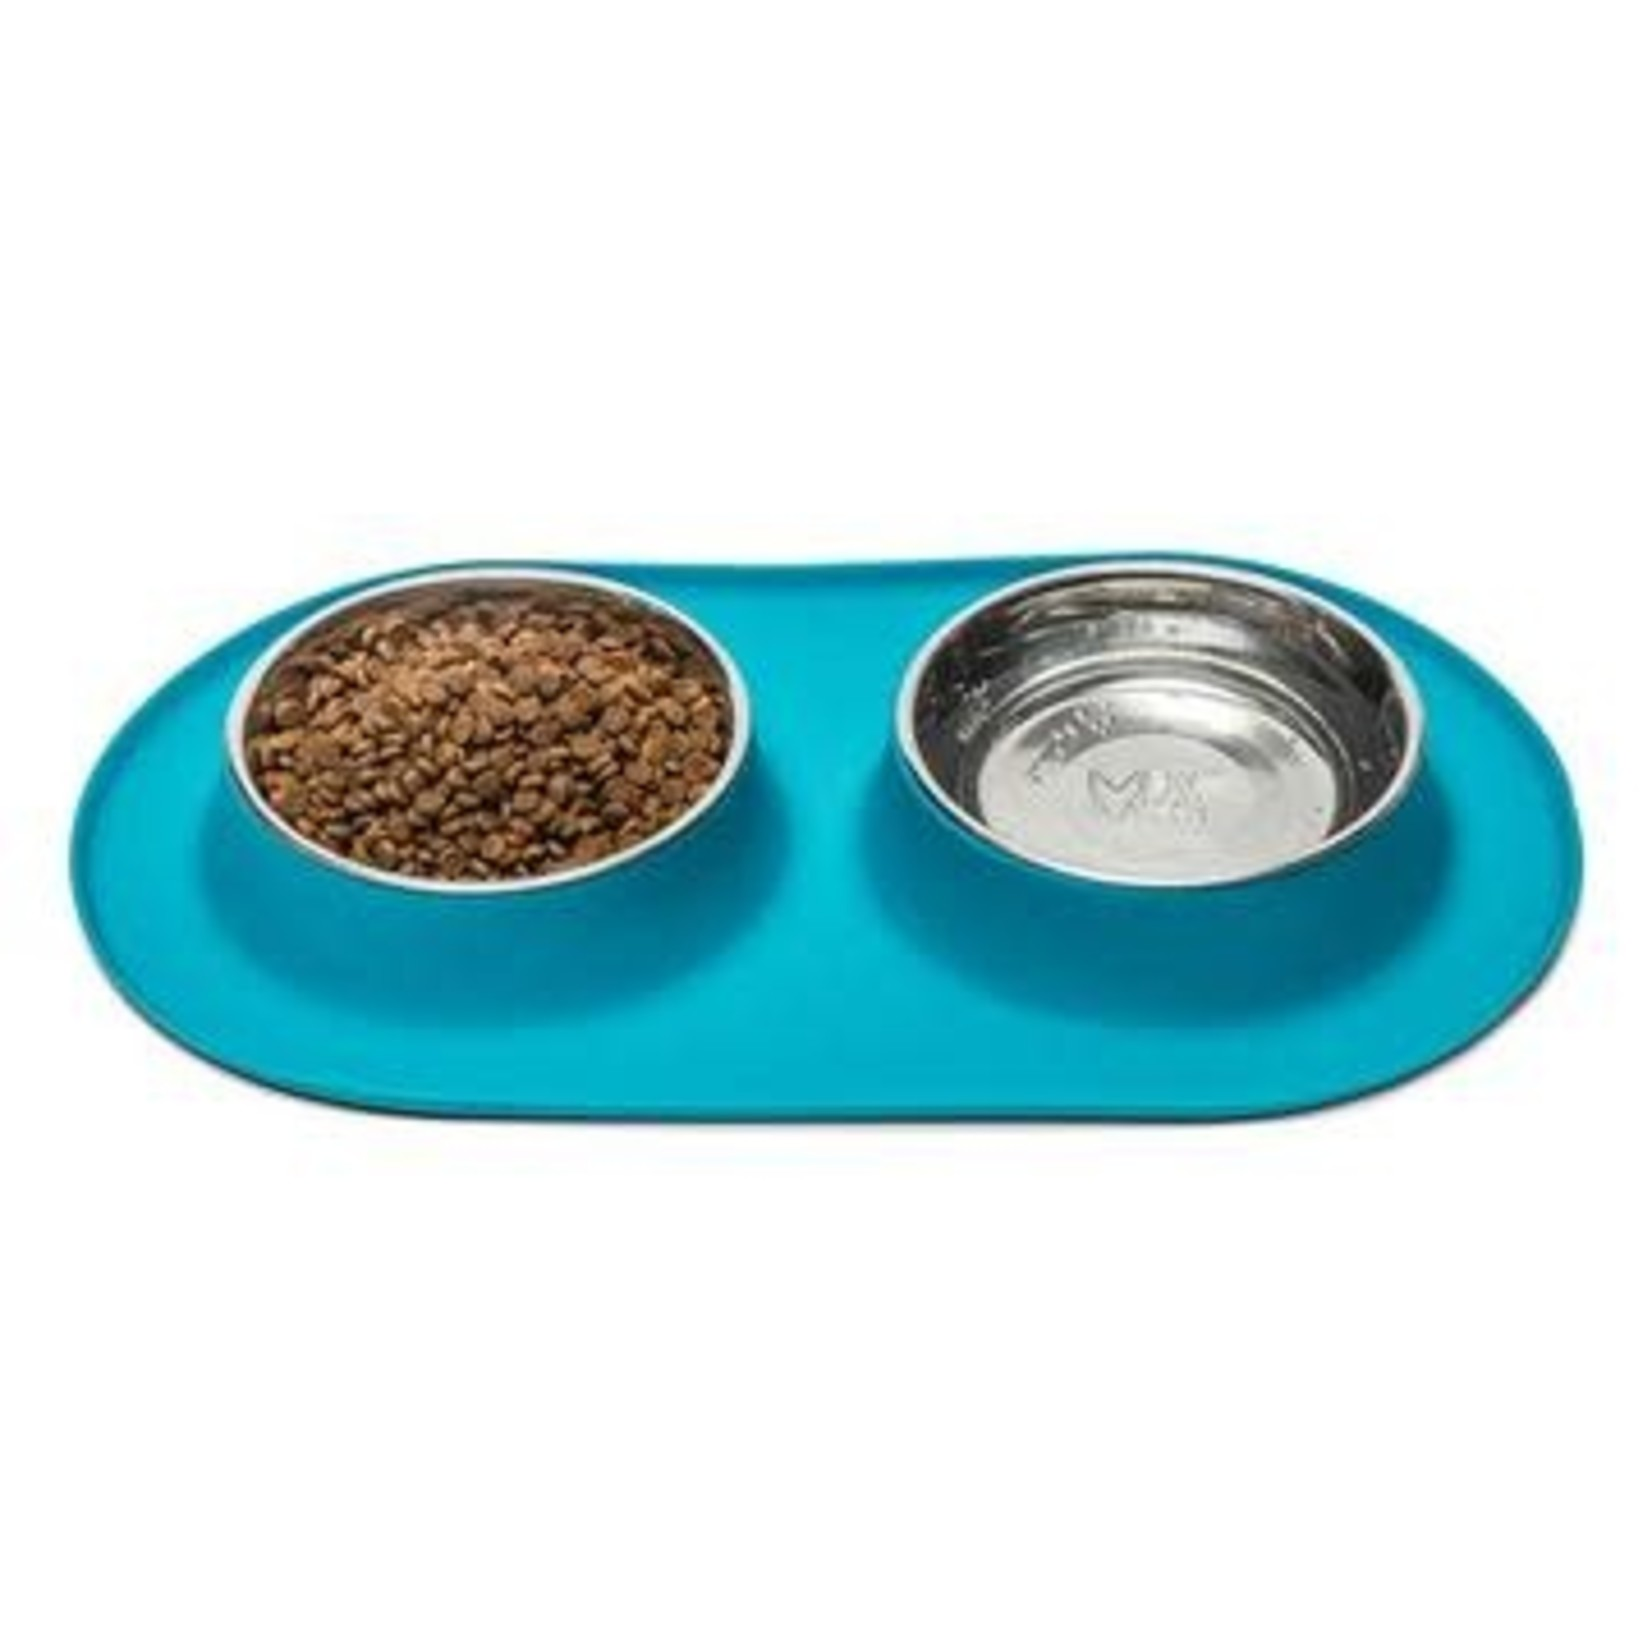 Messy Mutts Messy Mutts Dog Double Silicone Feeder Blue 6 CUP